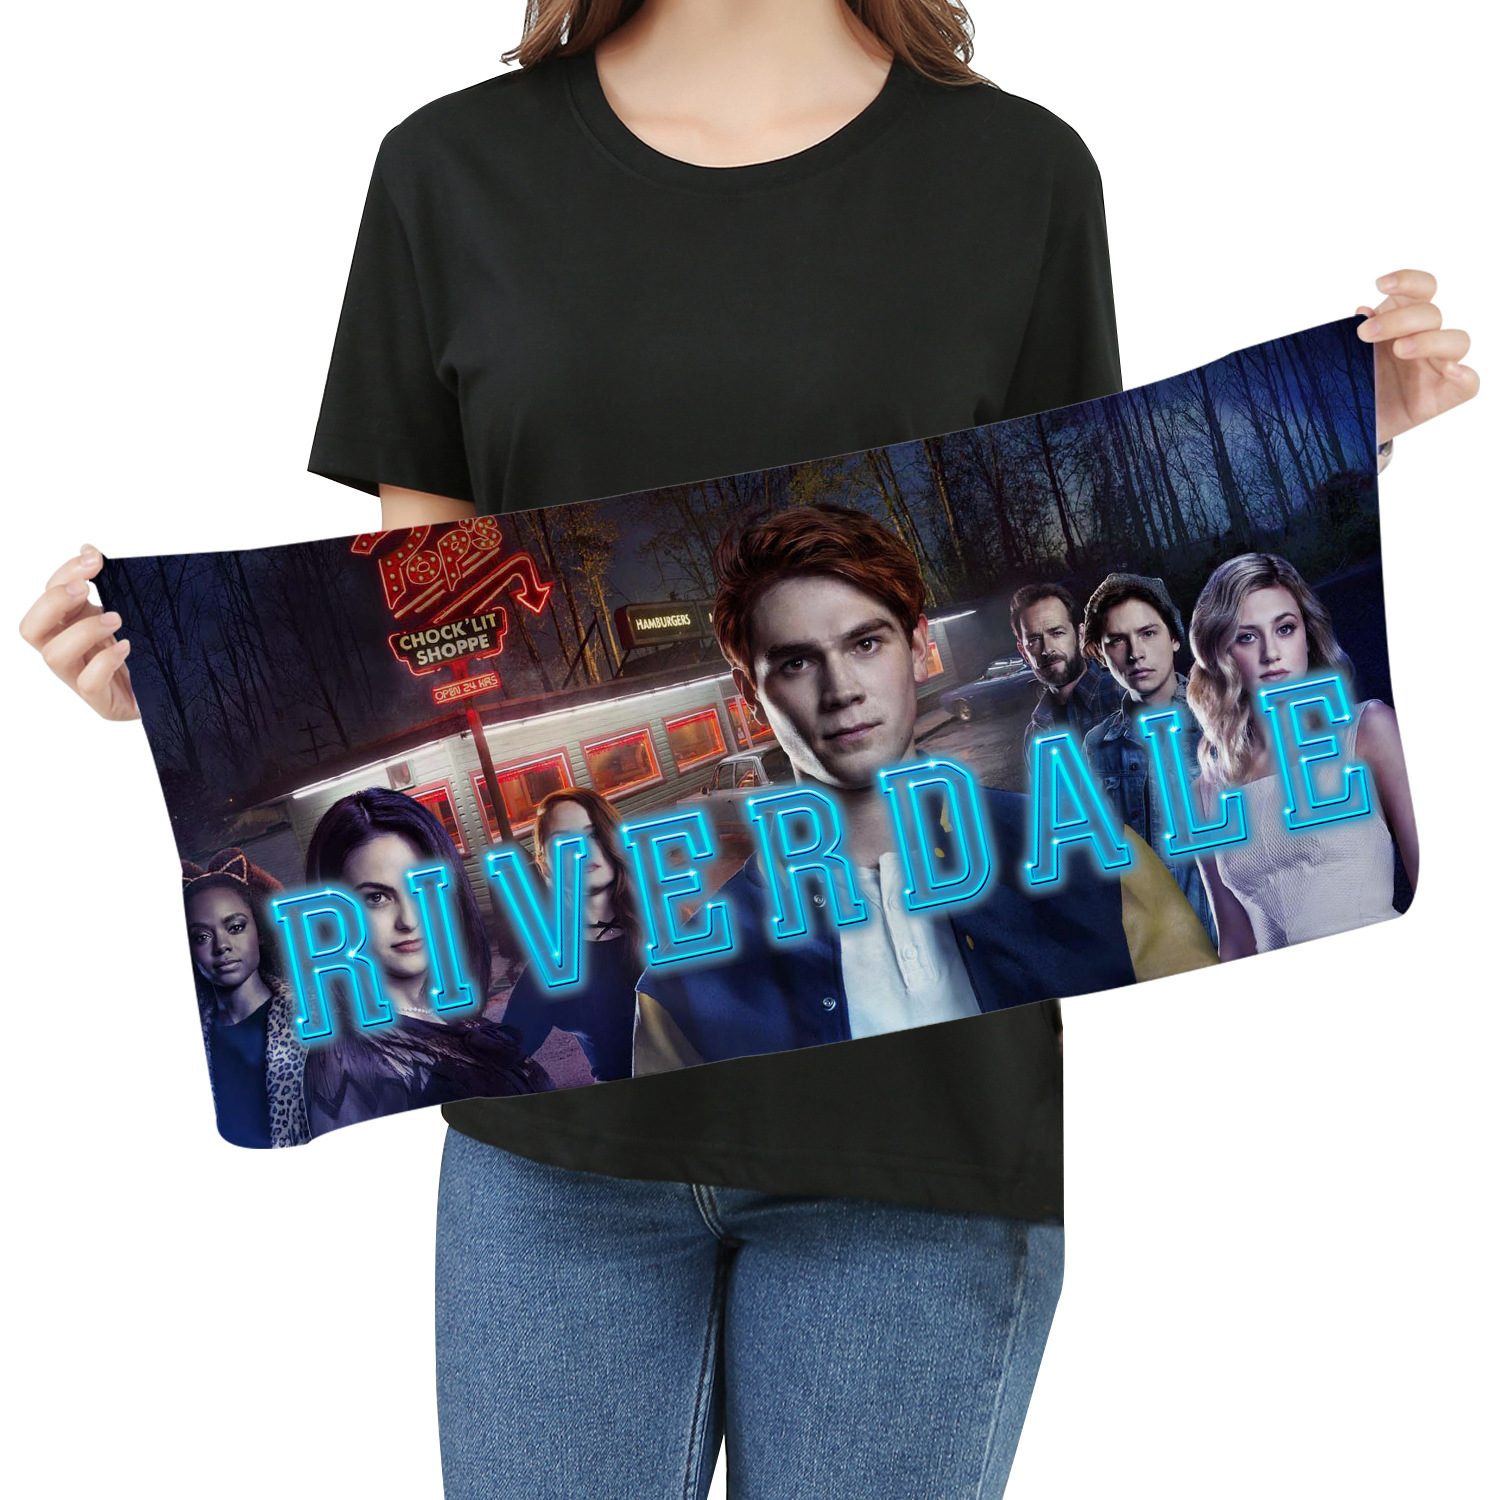 Riverdale American Drama Towel Towel Around The Same Paragraph Towel Wash Towel Microfiber Quick-drying Fashion Towel